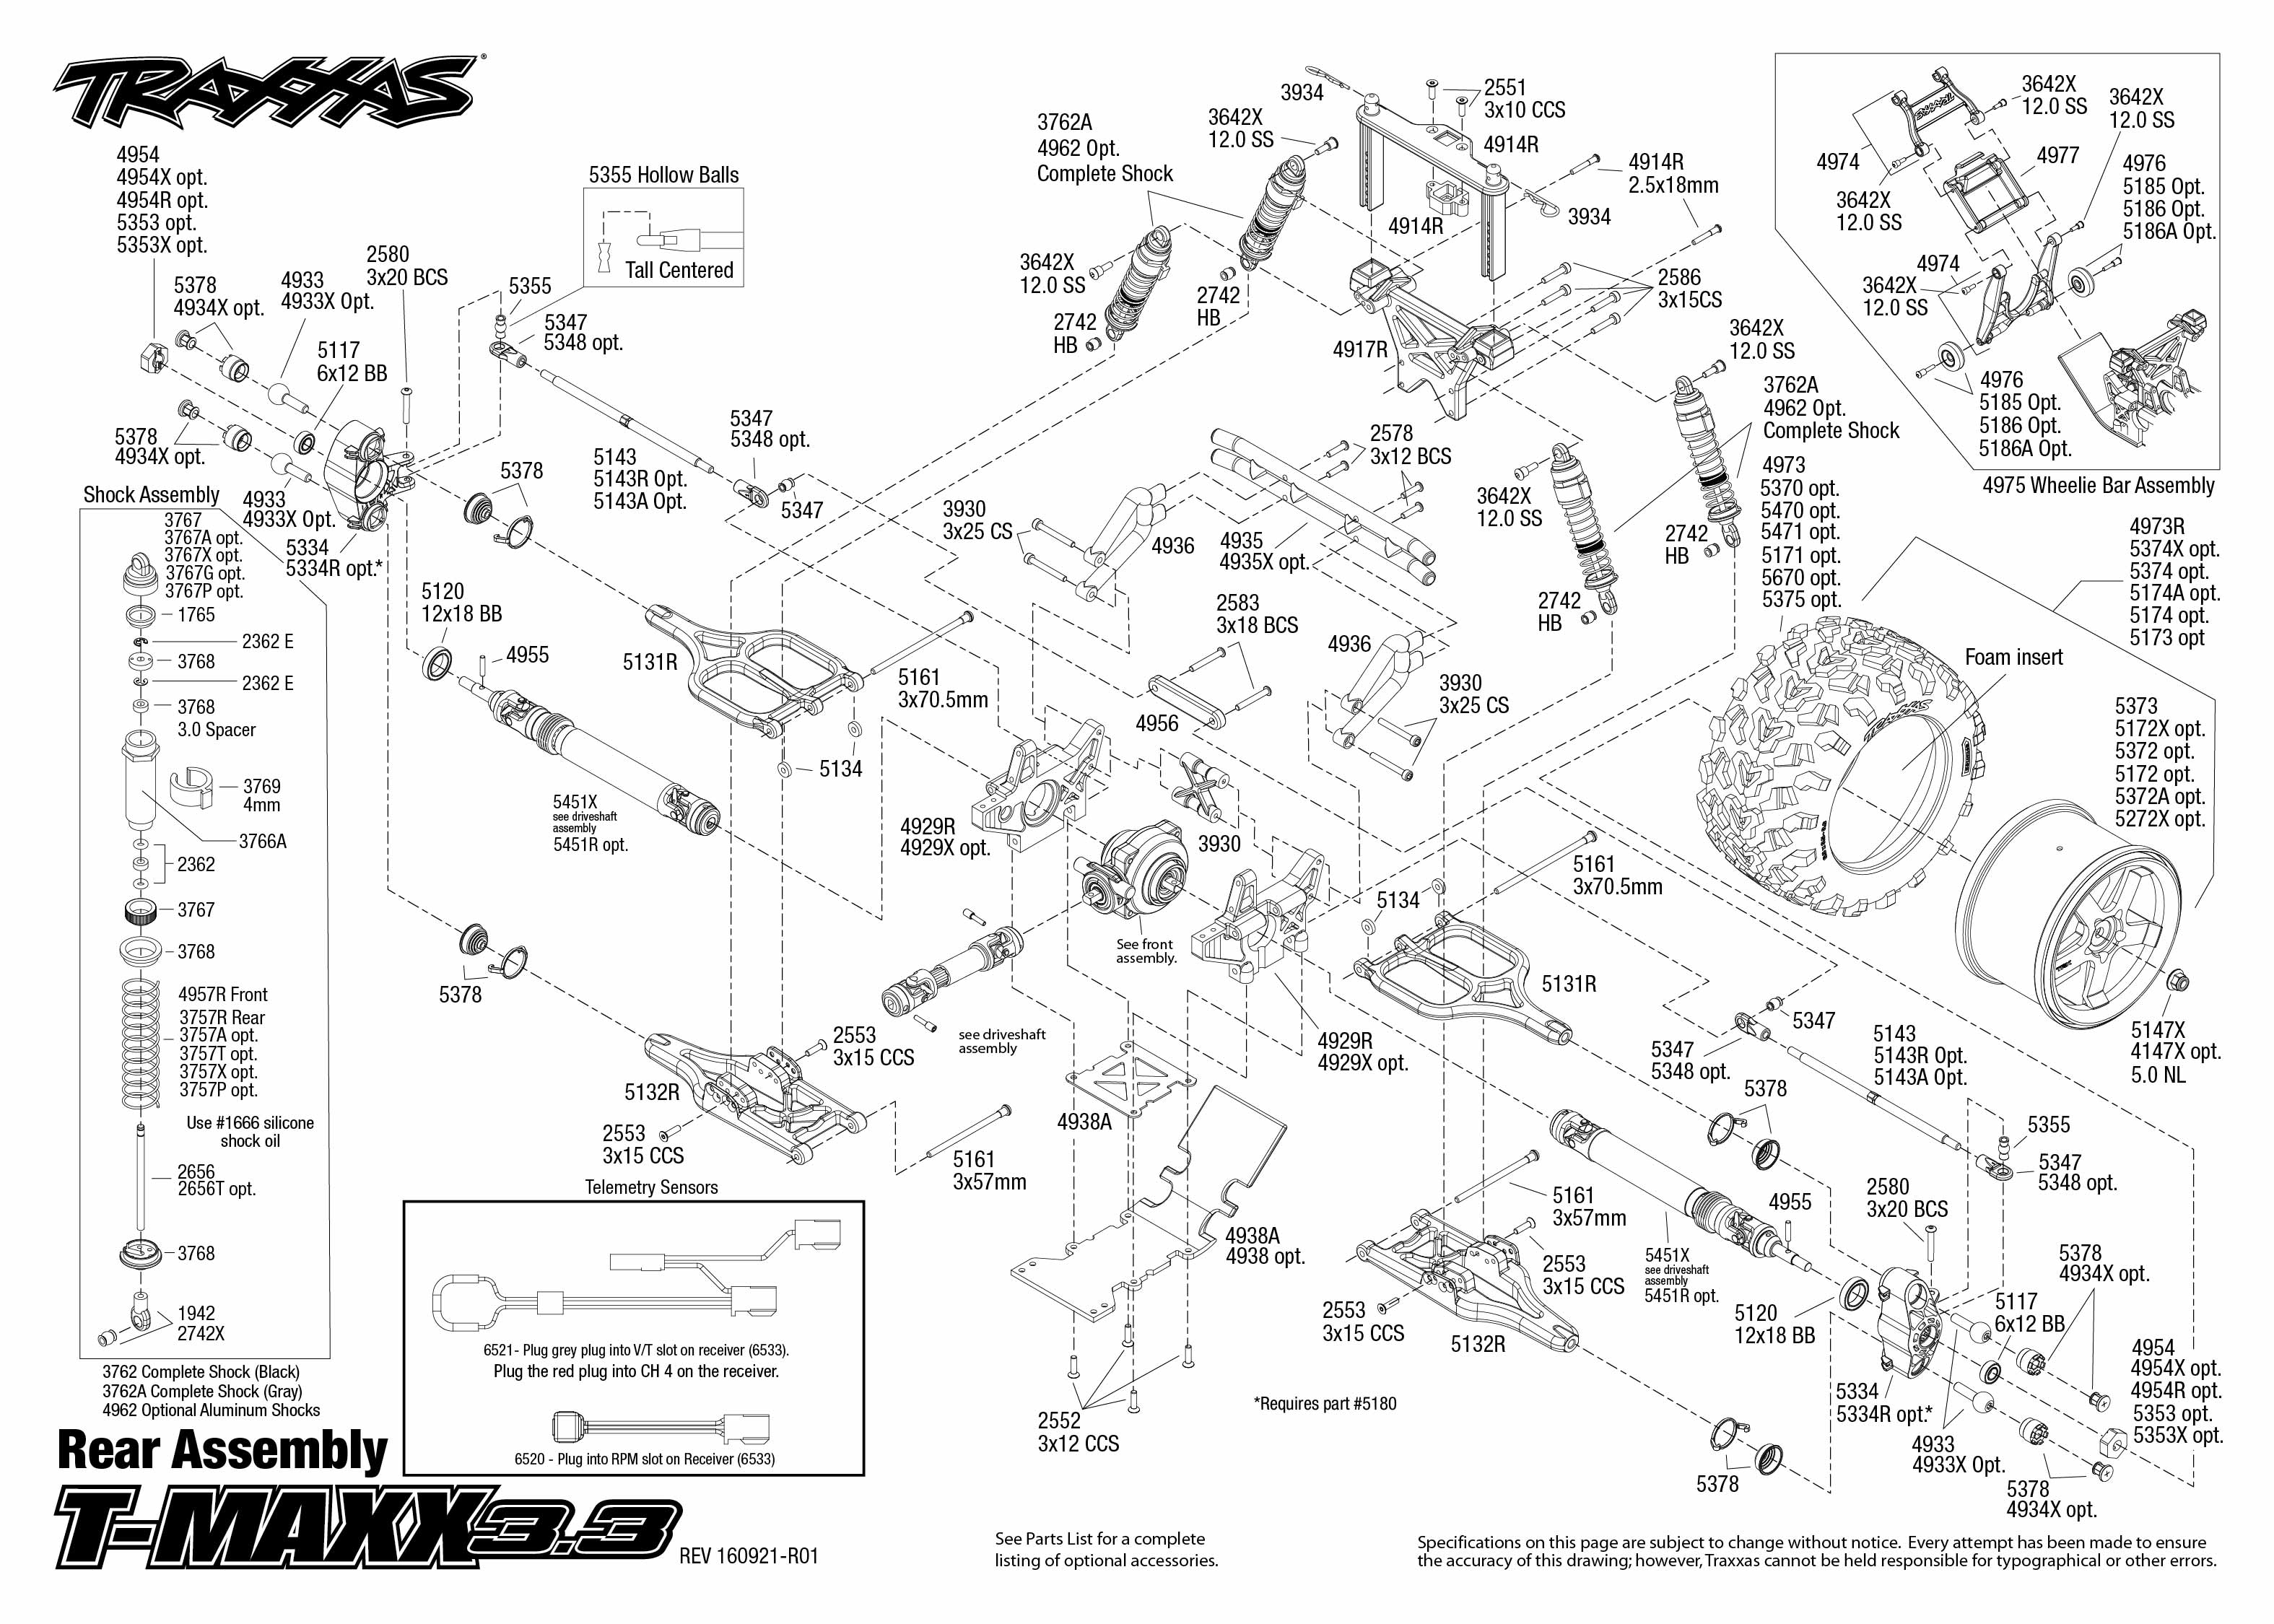 Superb Traxxas Engine Diagram Wiring Diagram Wiring Database Ittabxeroyuccorg